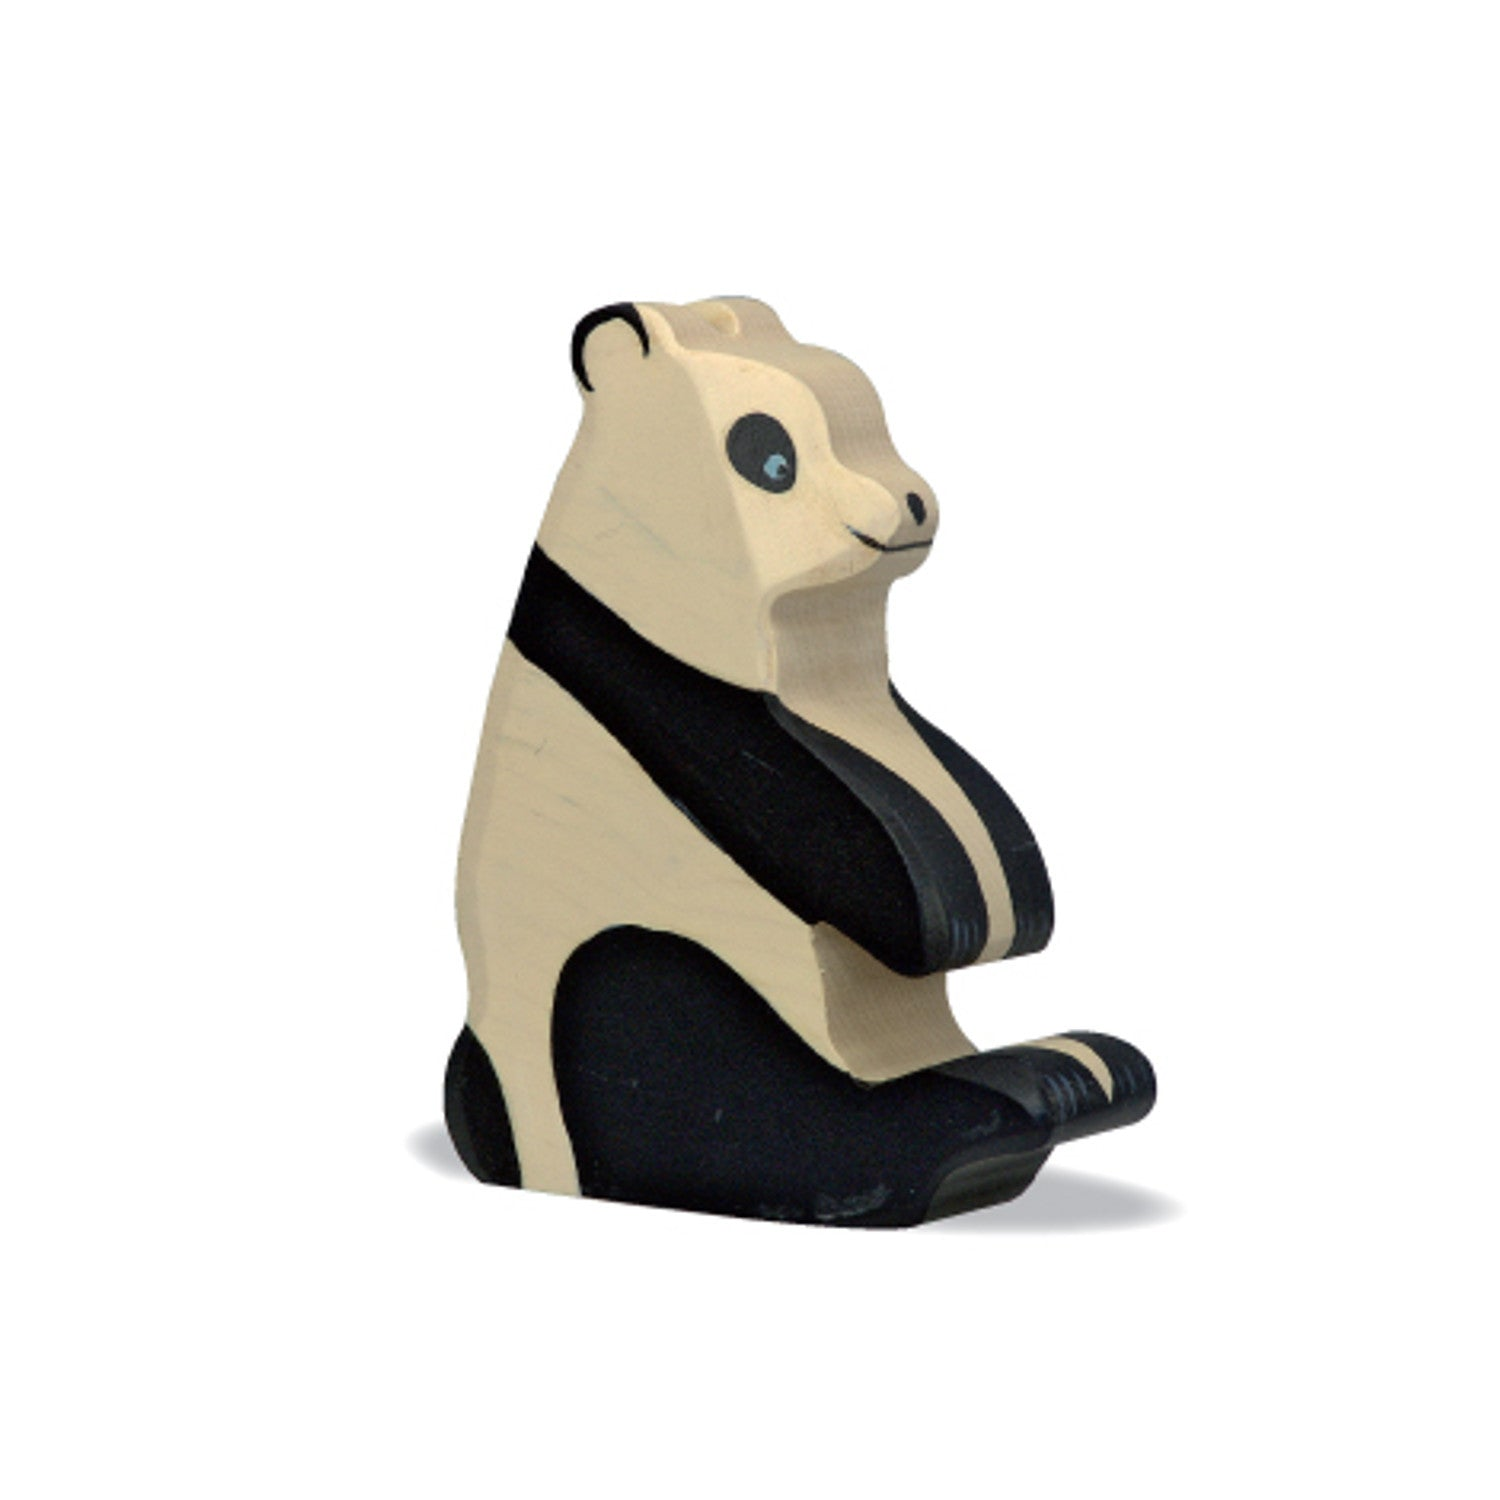 Holztiger wooden hand caved panda sitting figurine imaginative play